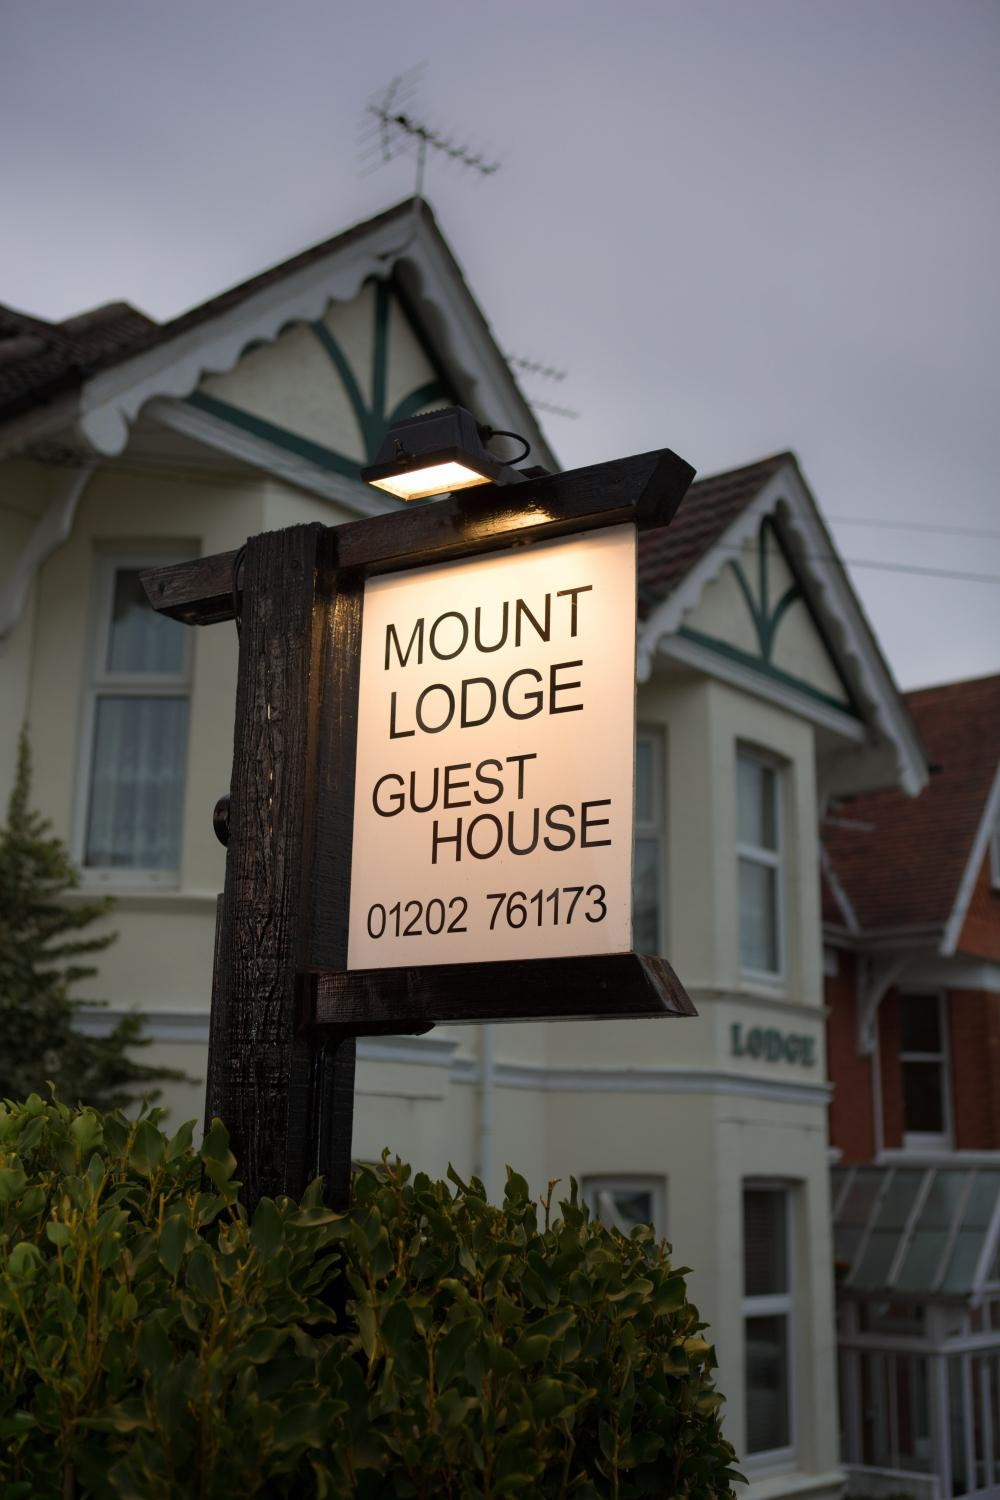 Mount Lodge